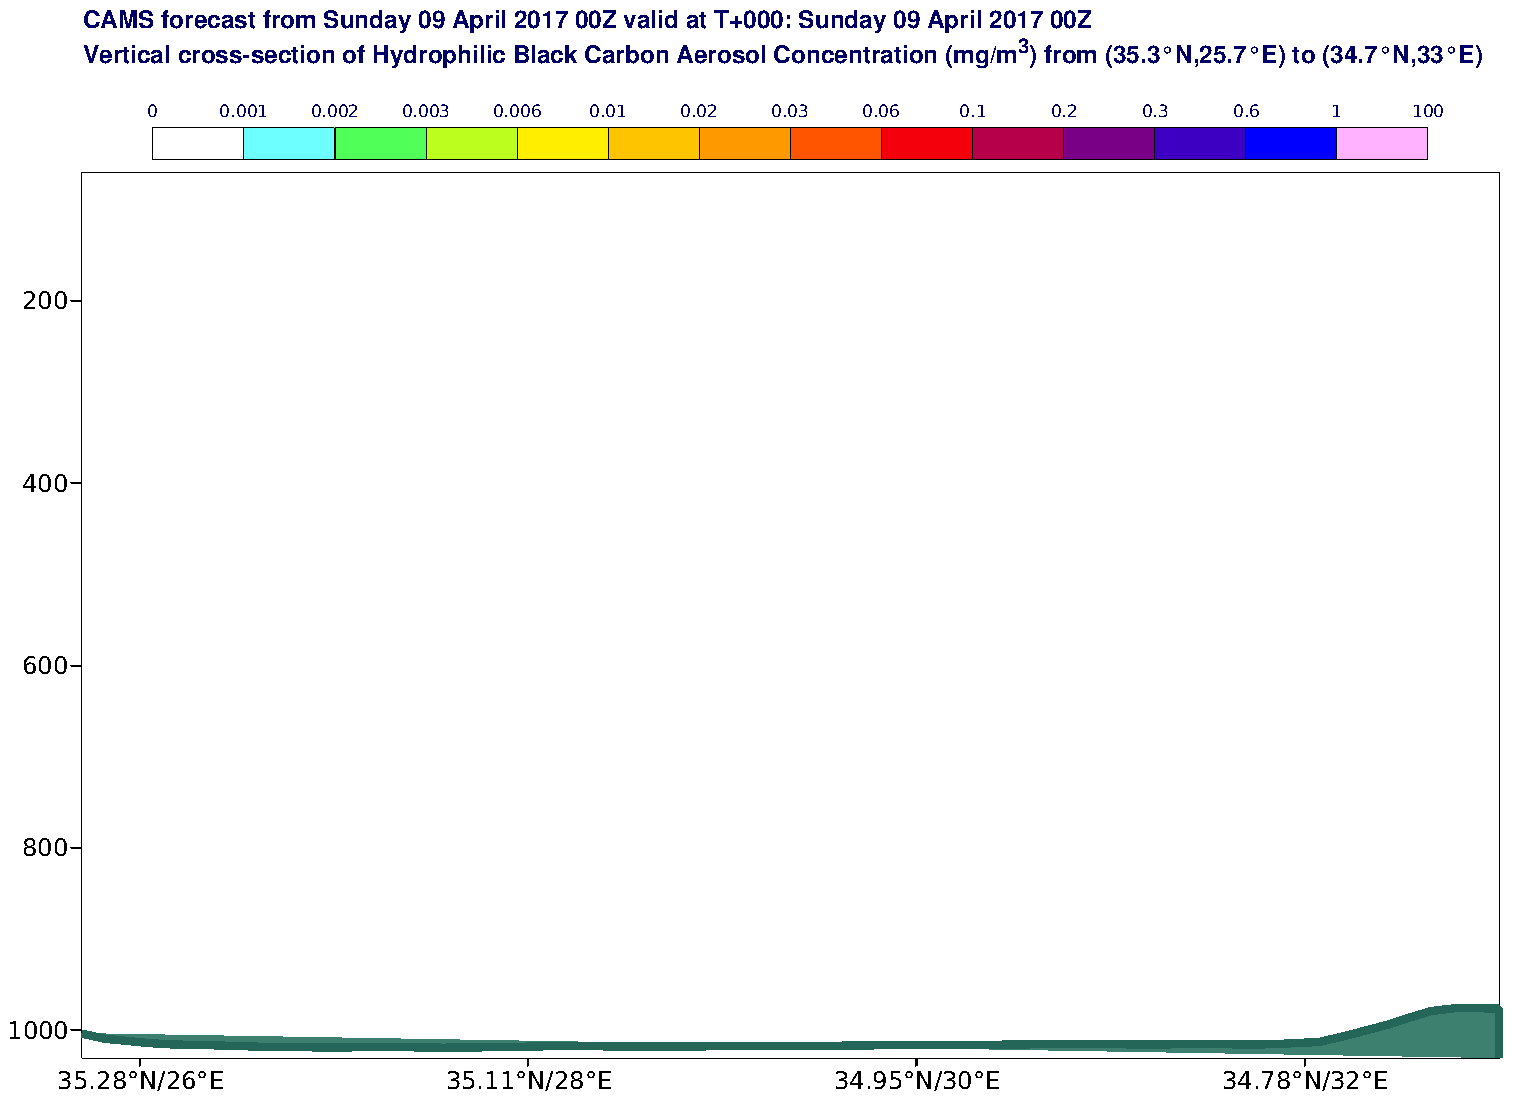 Vertical cross-section of Hydrophilic Black Carbon Aerosol Concentration (mg/m3) valid at T0 - 2017-04-09 00:00